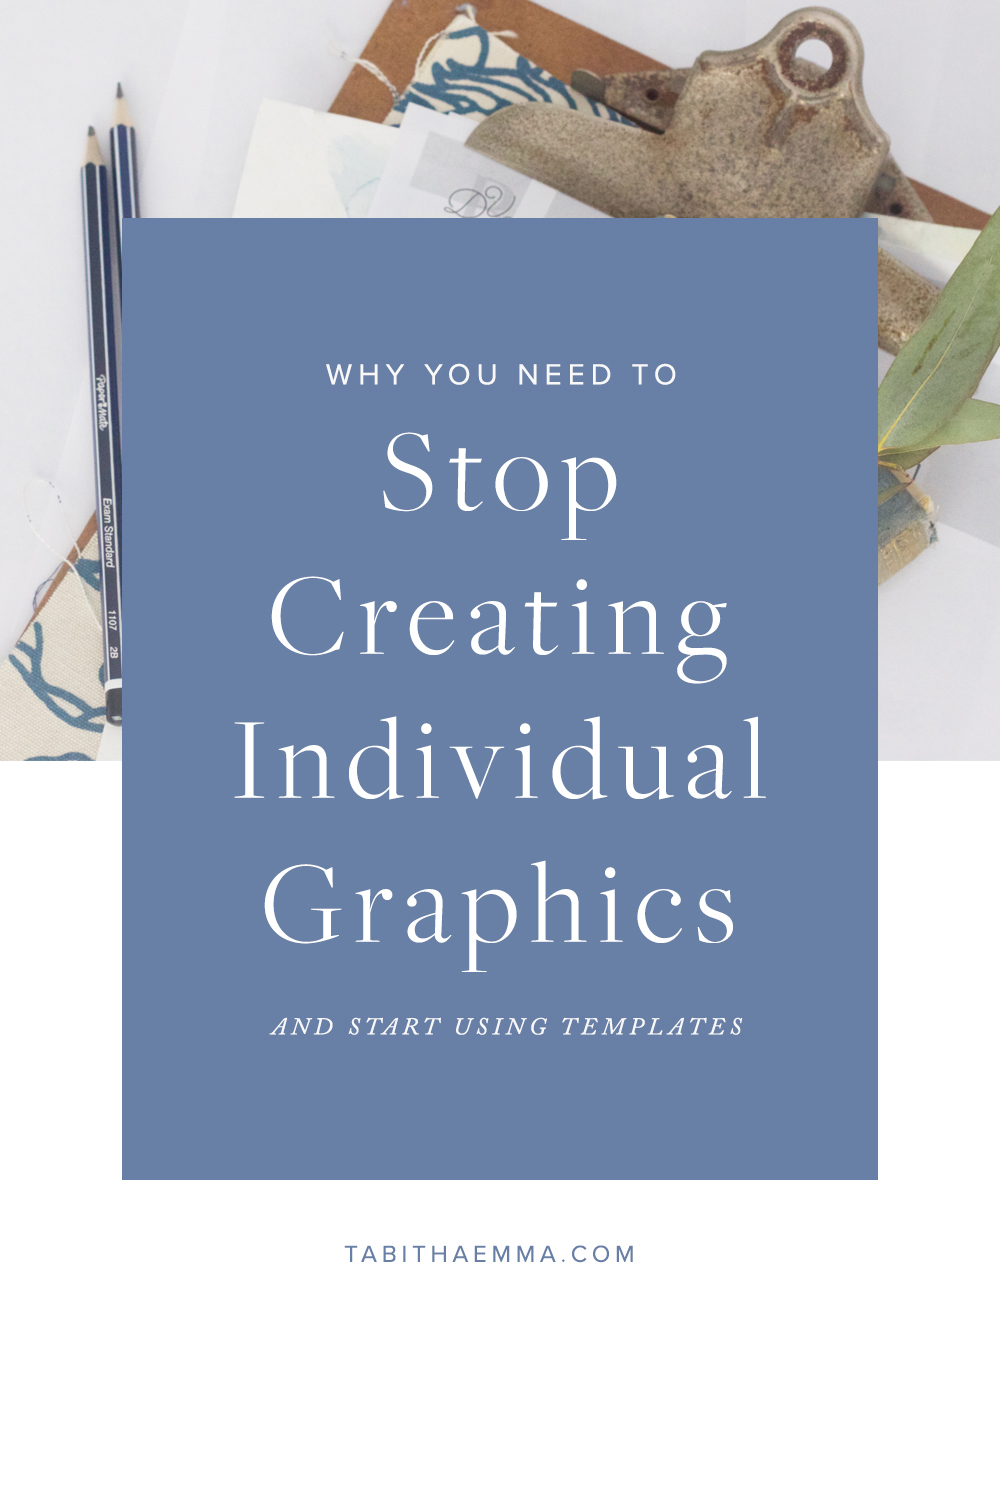 Why you Need to Stop Creating Individual Graphics